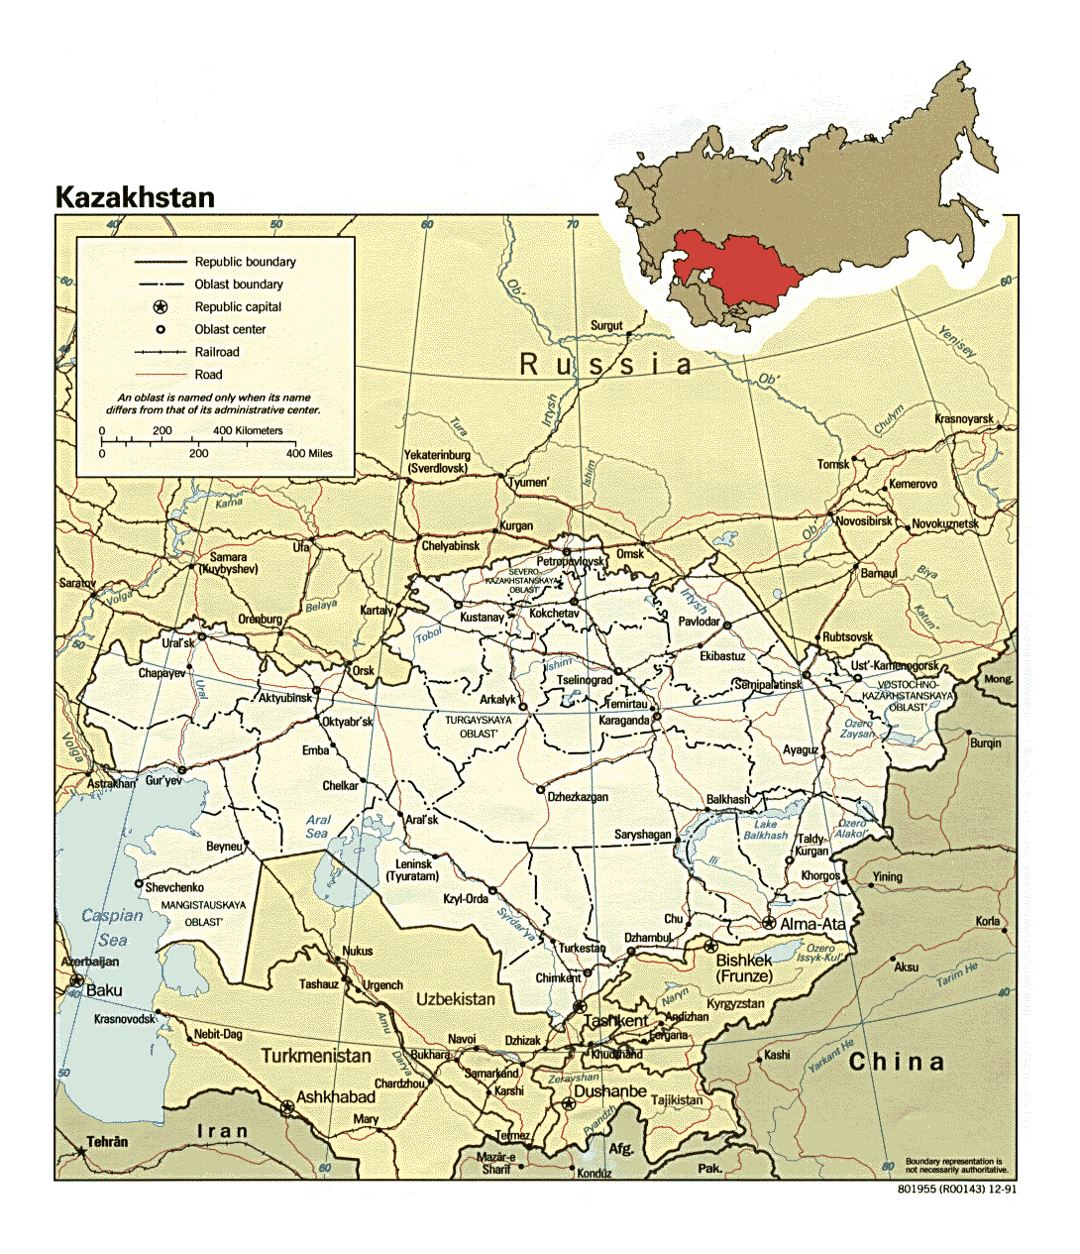 Detailed political and administrative map of Kazakhstan with roads, railroads and cities - 1991